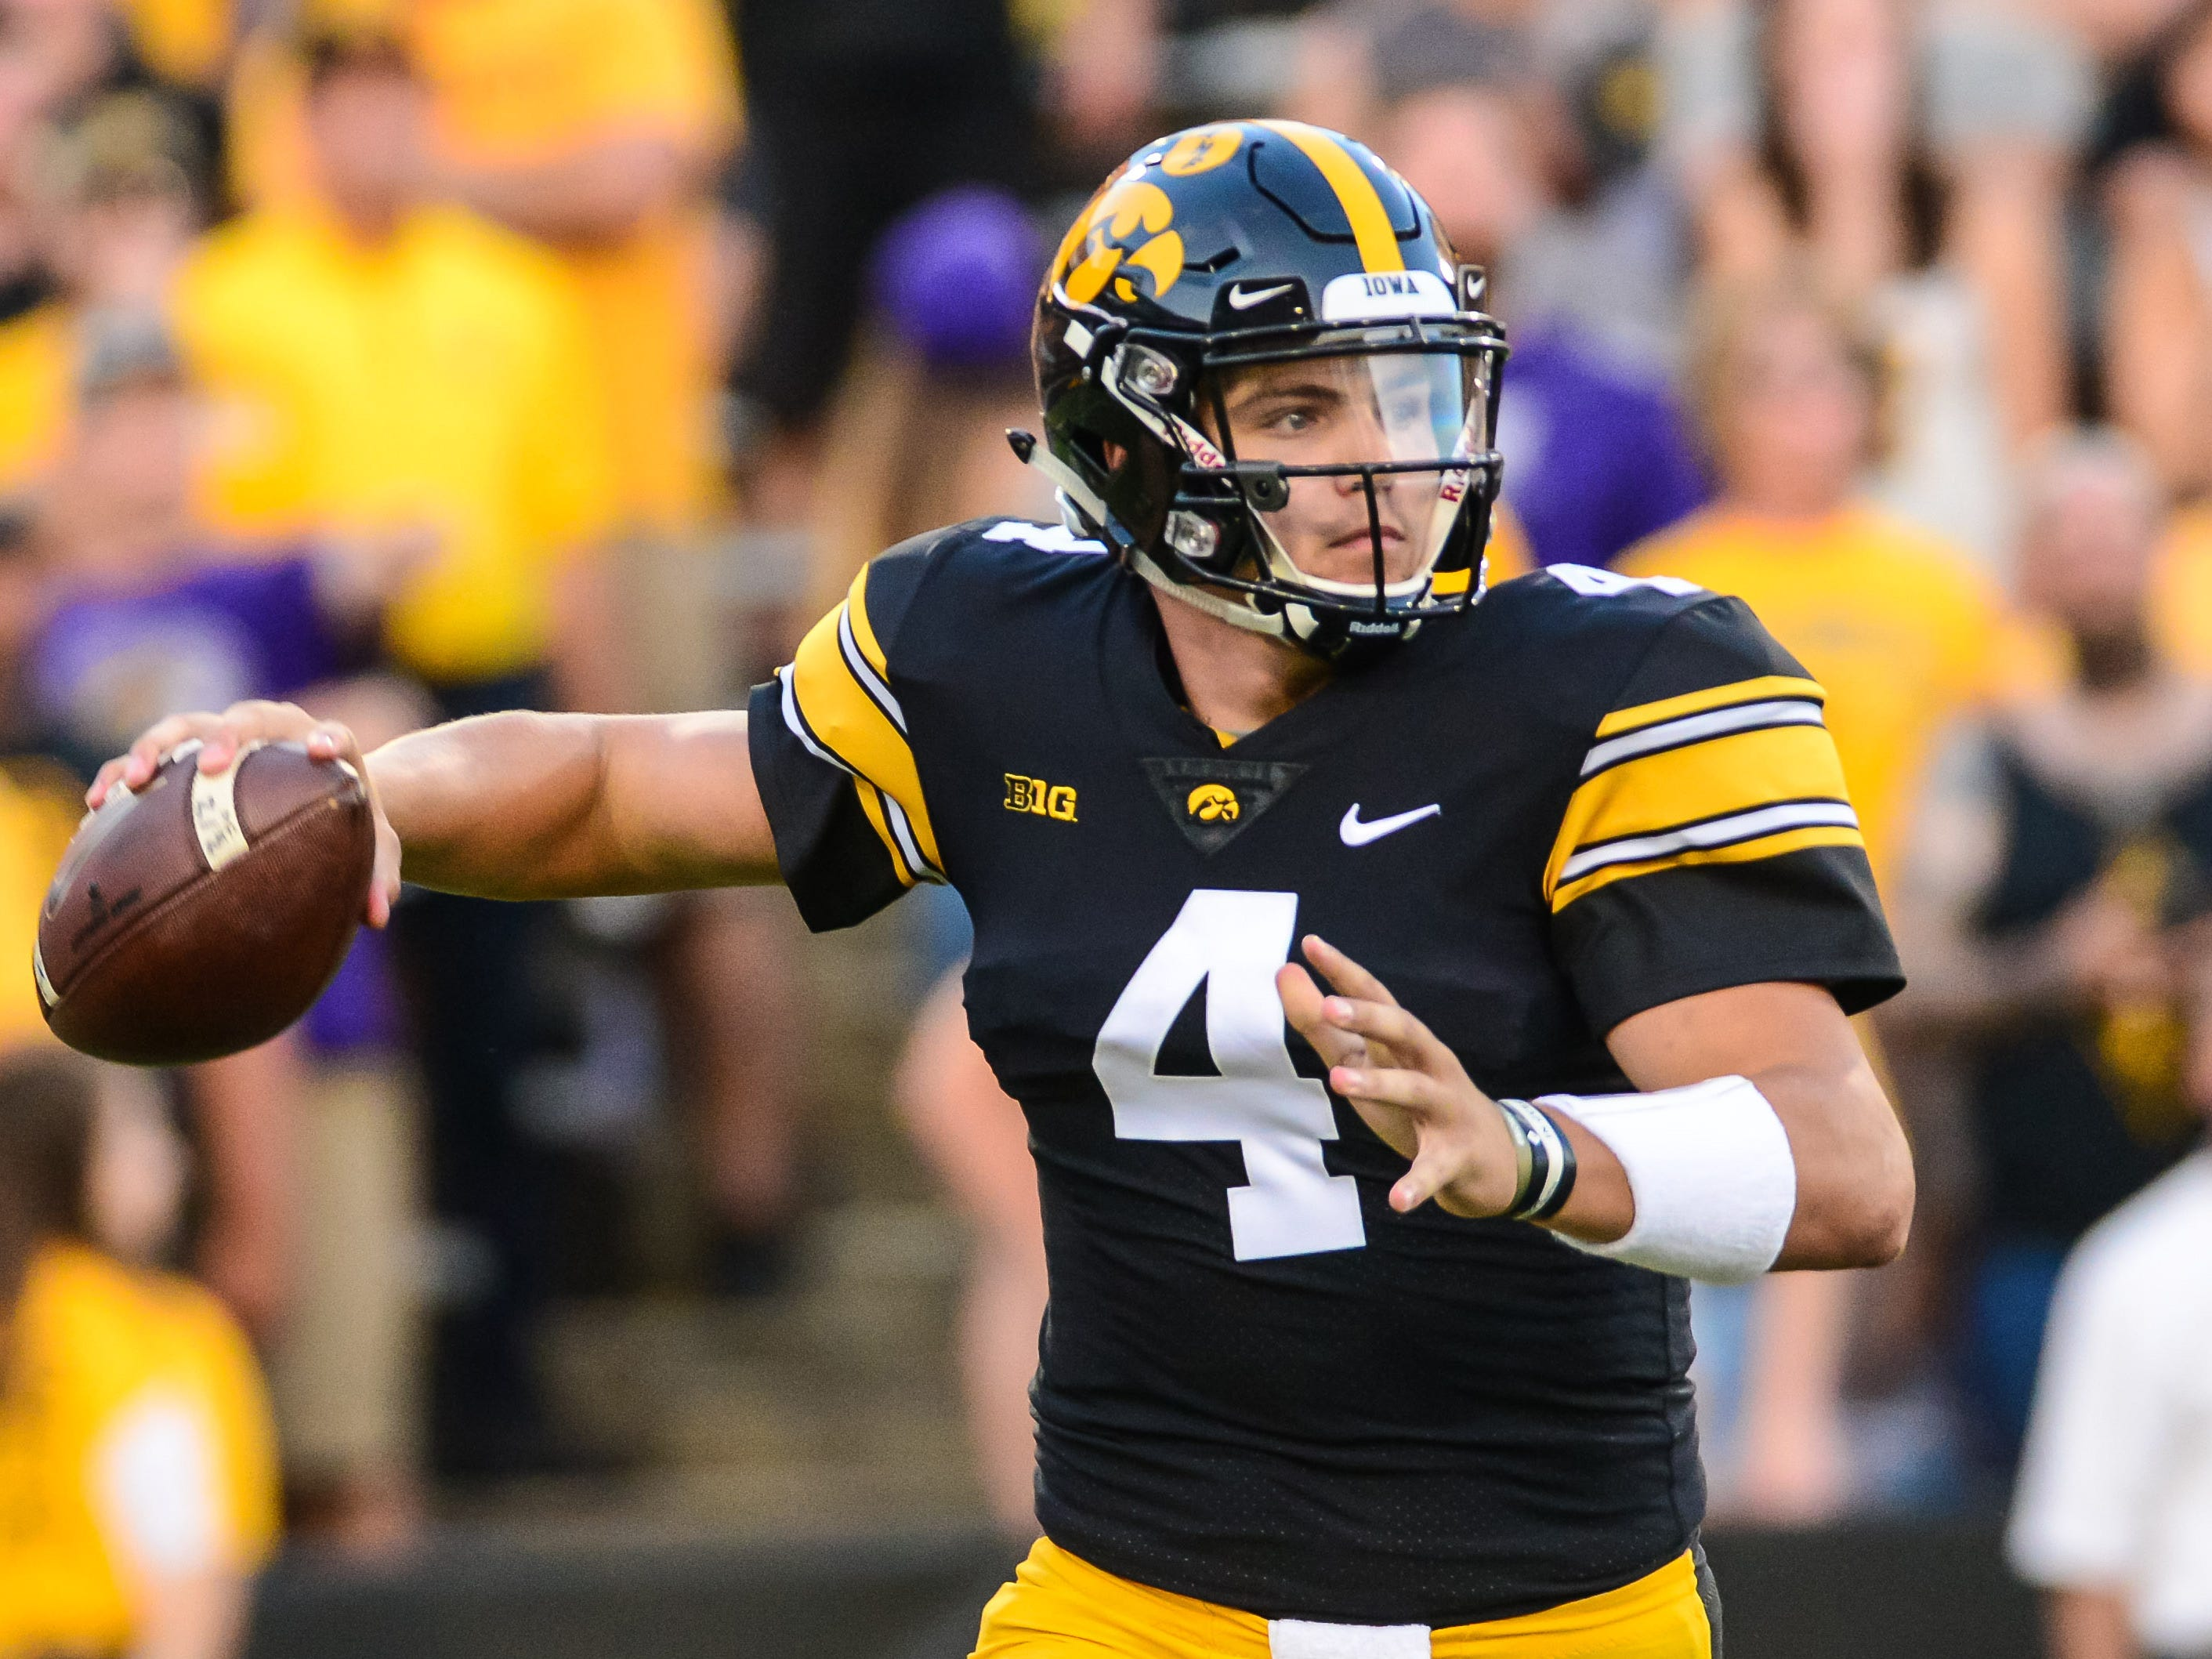 Sep 15, 2018; Iowa City, IA, USA; Iowa Hawkeyes quarterback Nate Stanley (4) throws a pass during the first quarter against the Northern Iowa Panthers at Kinnick Stadium. Mandatory Credit: Jeffrey Becker-USA TODAY Sports